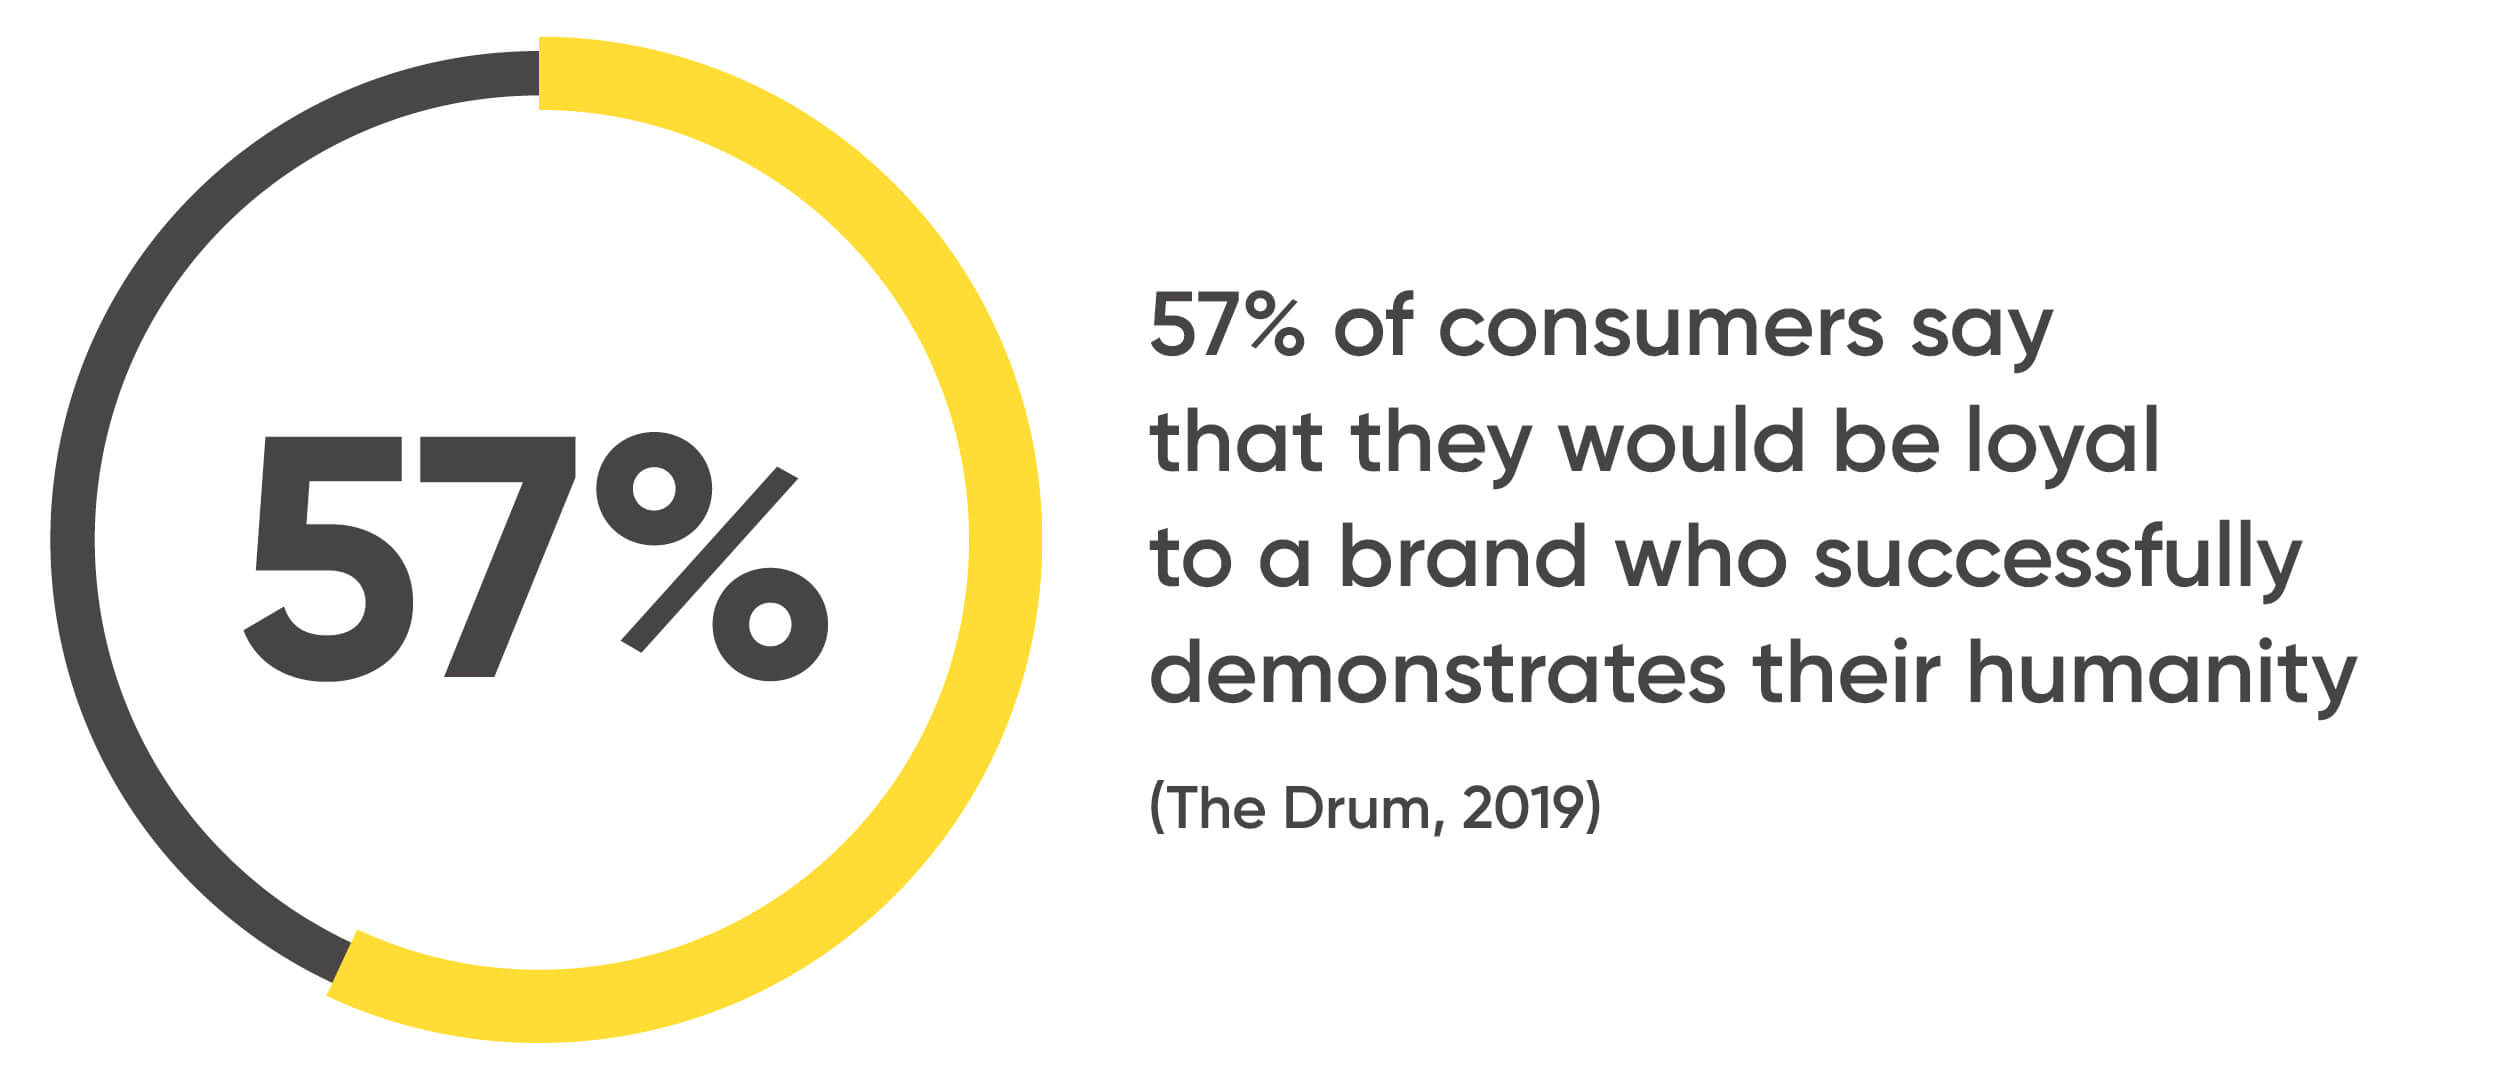 57% of consumers